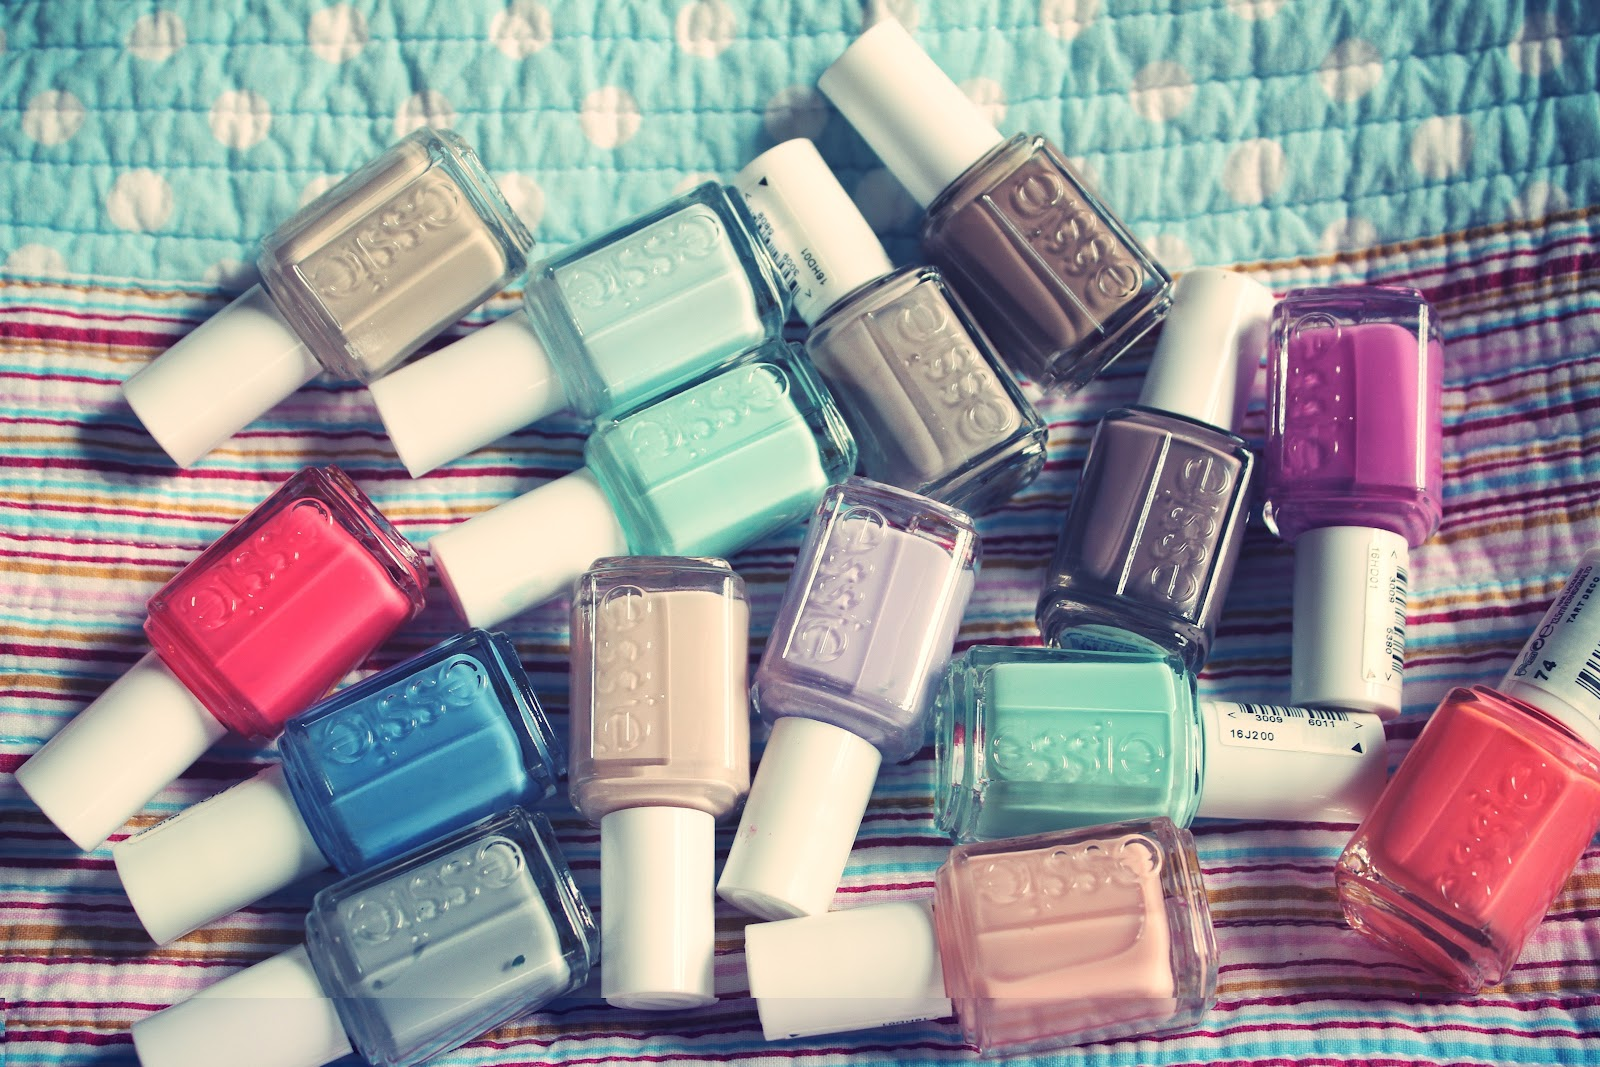 My Essie Nail Polish Collection – Lily Pebbles